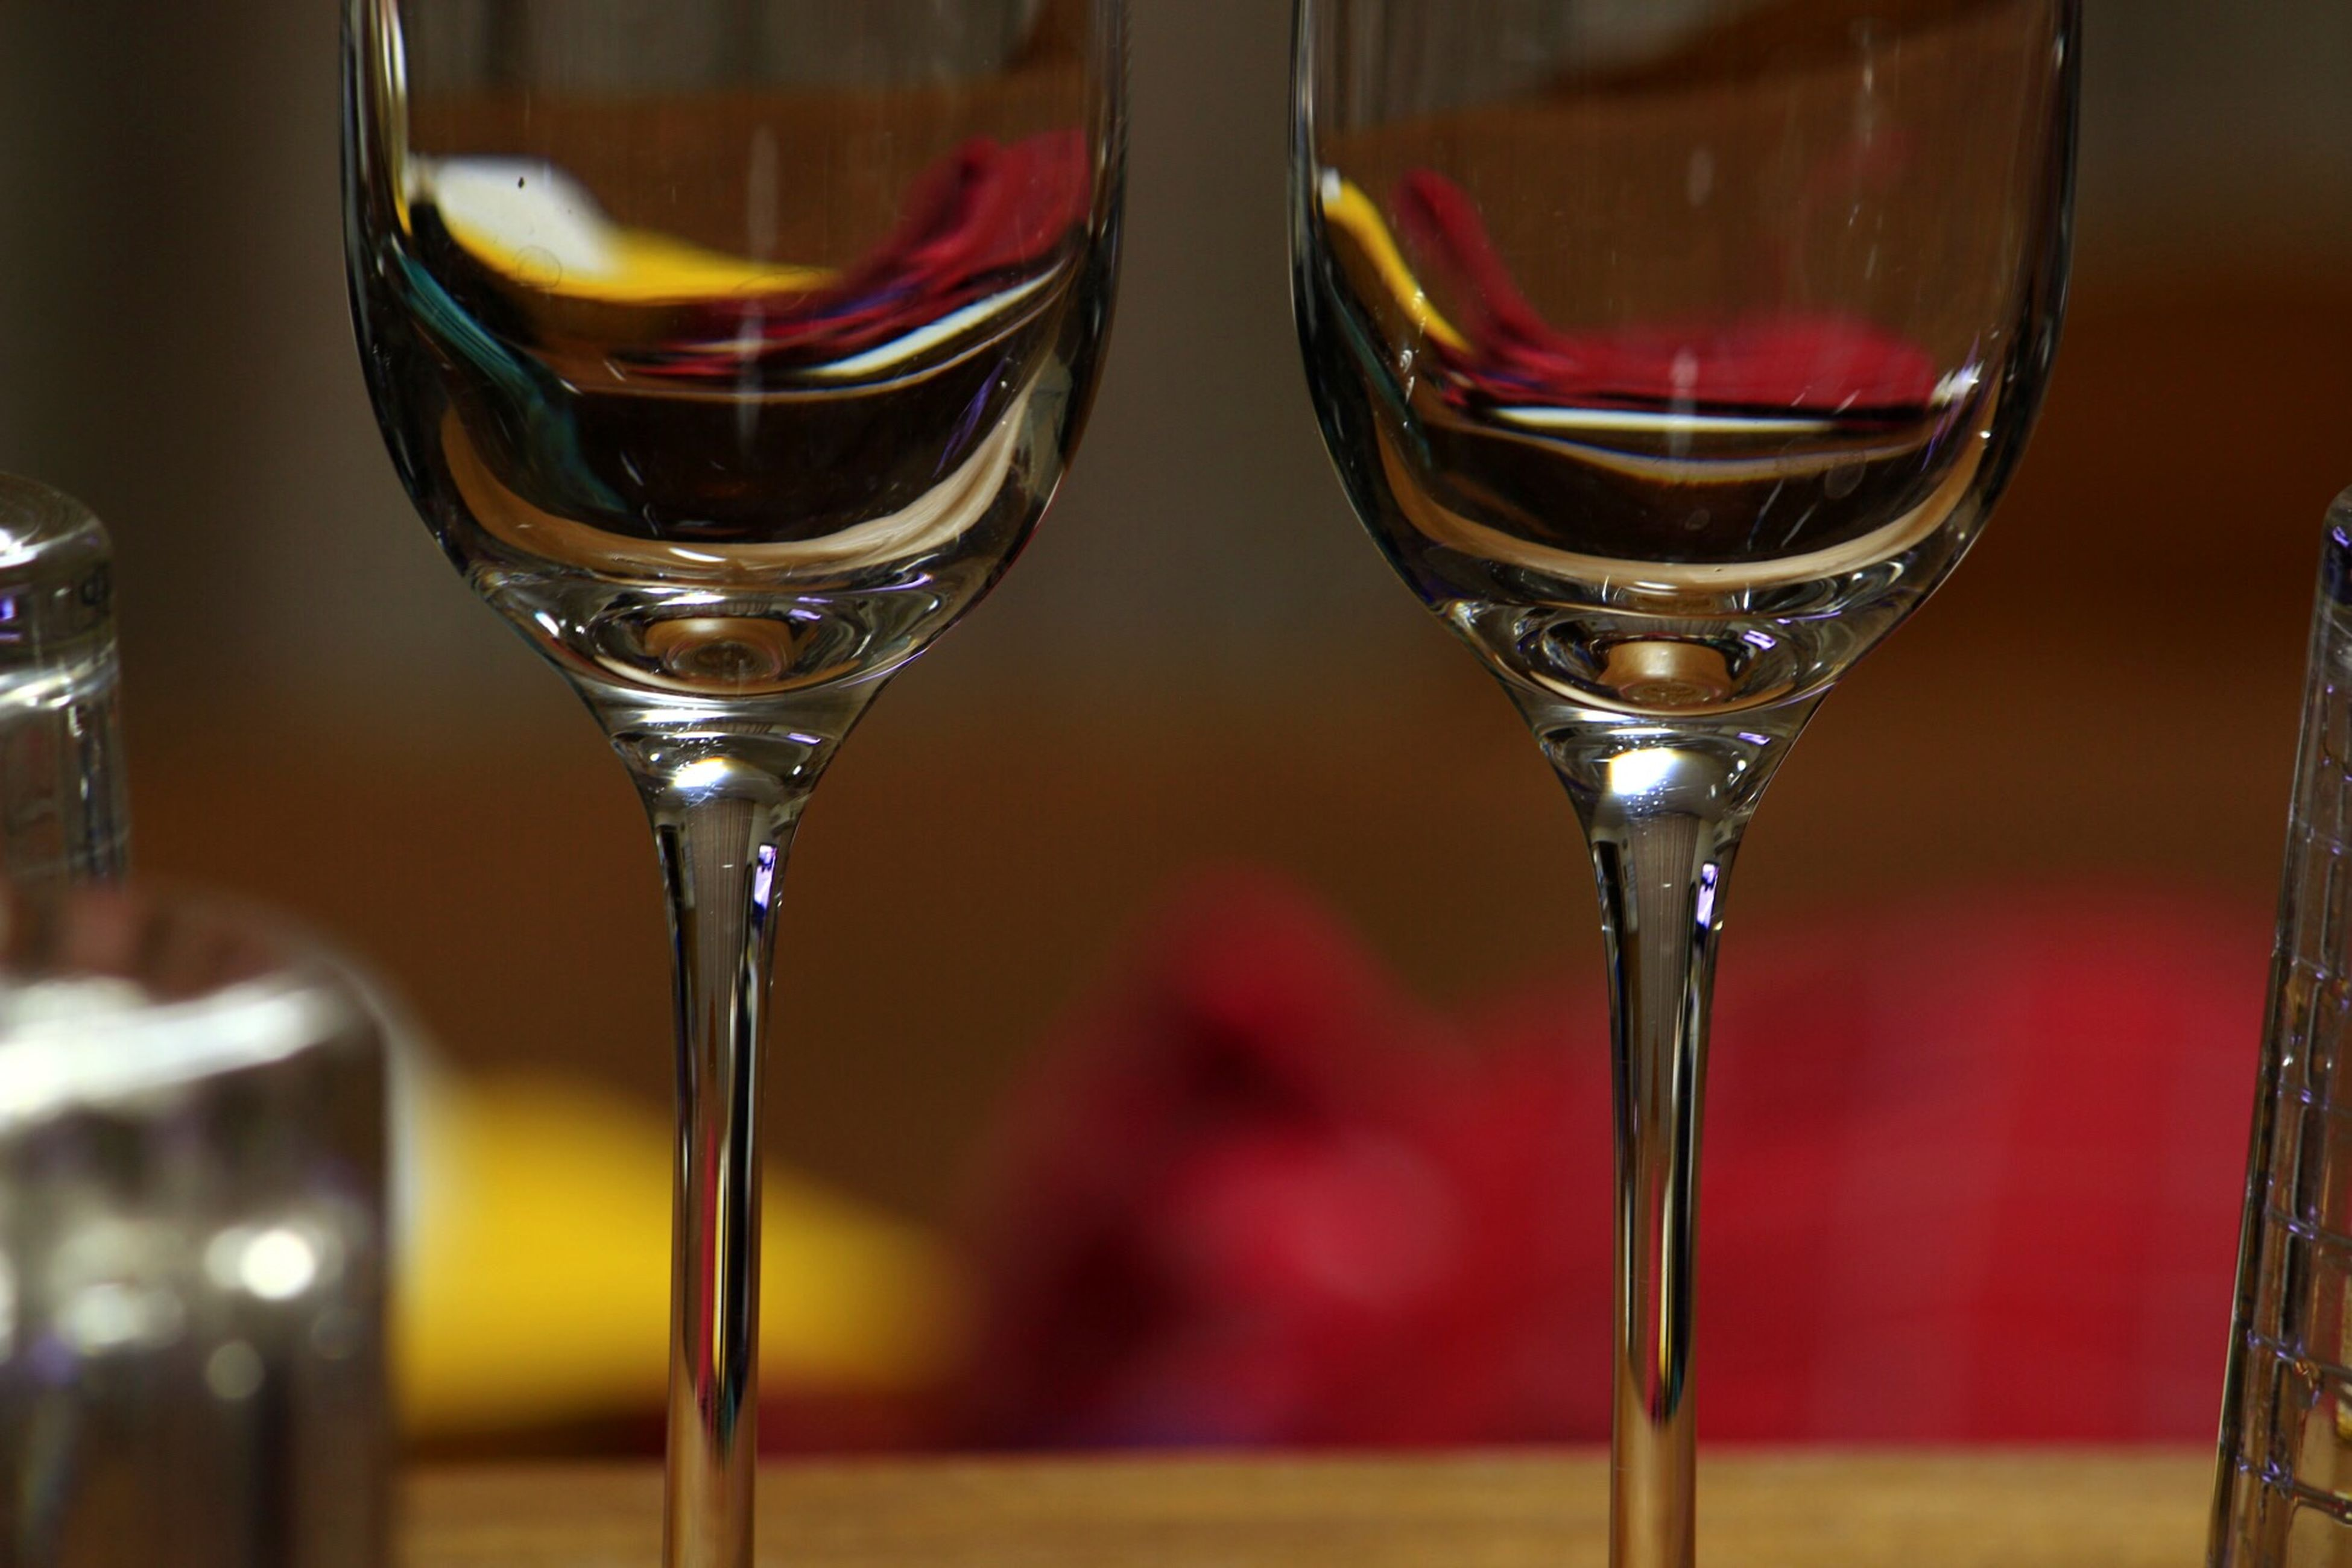 indoors, drink, glass - material, drinking glass, food and drink, transparent, table, refreshment, still life, wineglass, close-up, alcohol, focus on foreground, glass, wine, freshness, restaurant, red, no people, selective focus